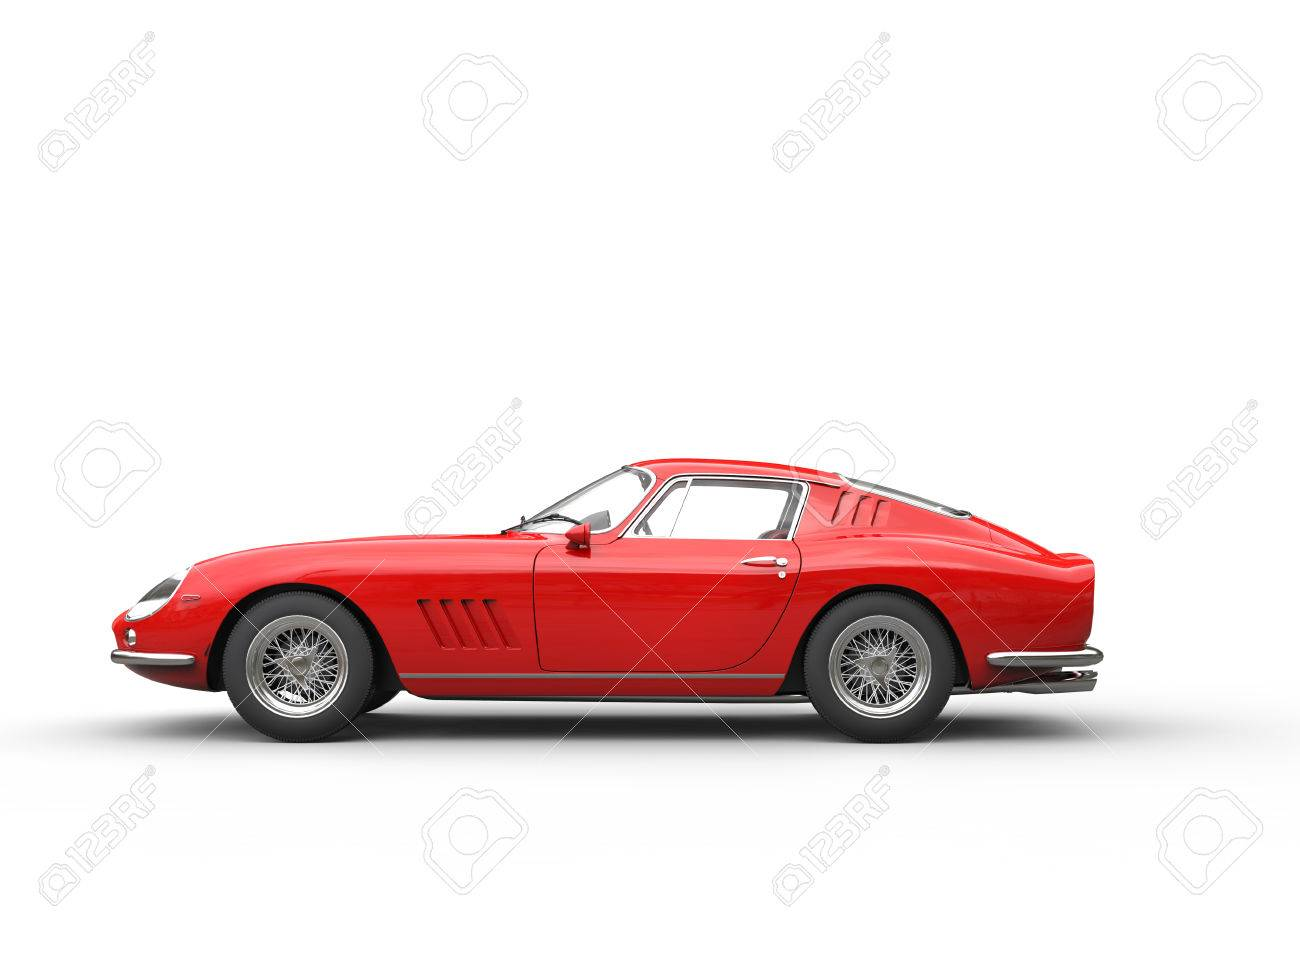 Red Vintage Sports Car   Side View   Isolated On White Background Stock  Photo   56828706